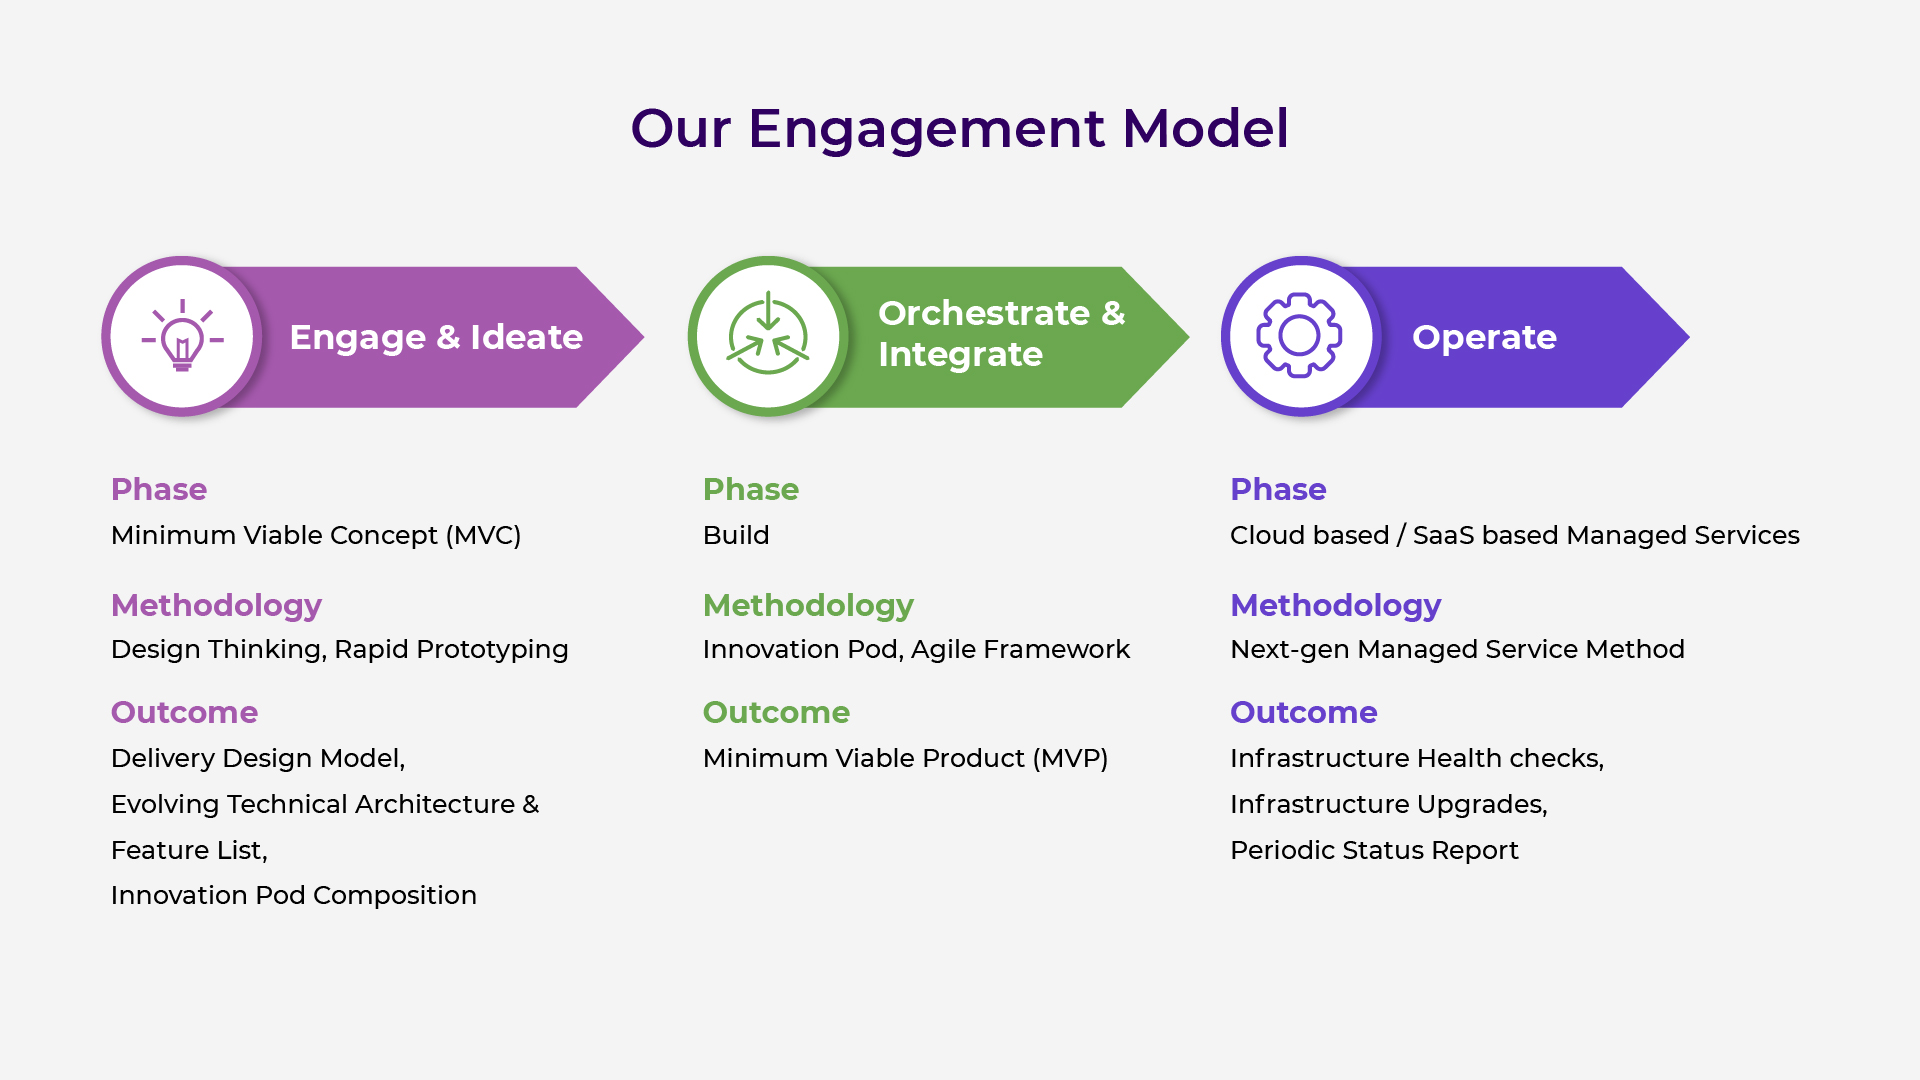 Our Engagement Model